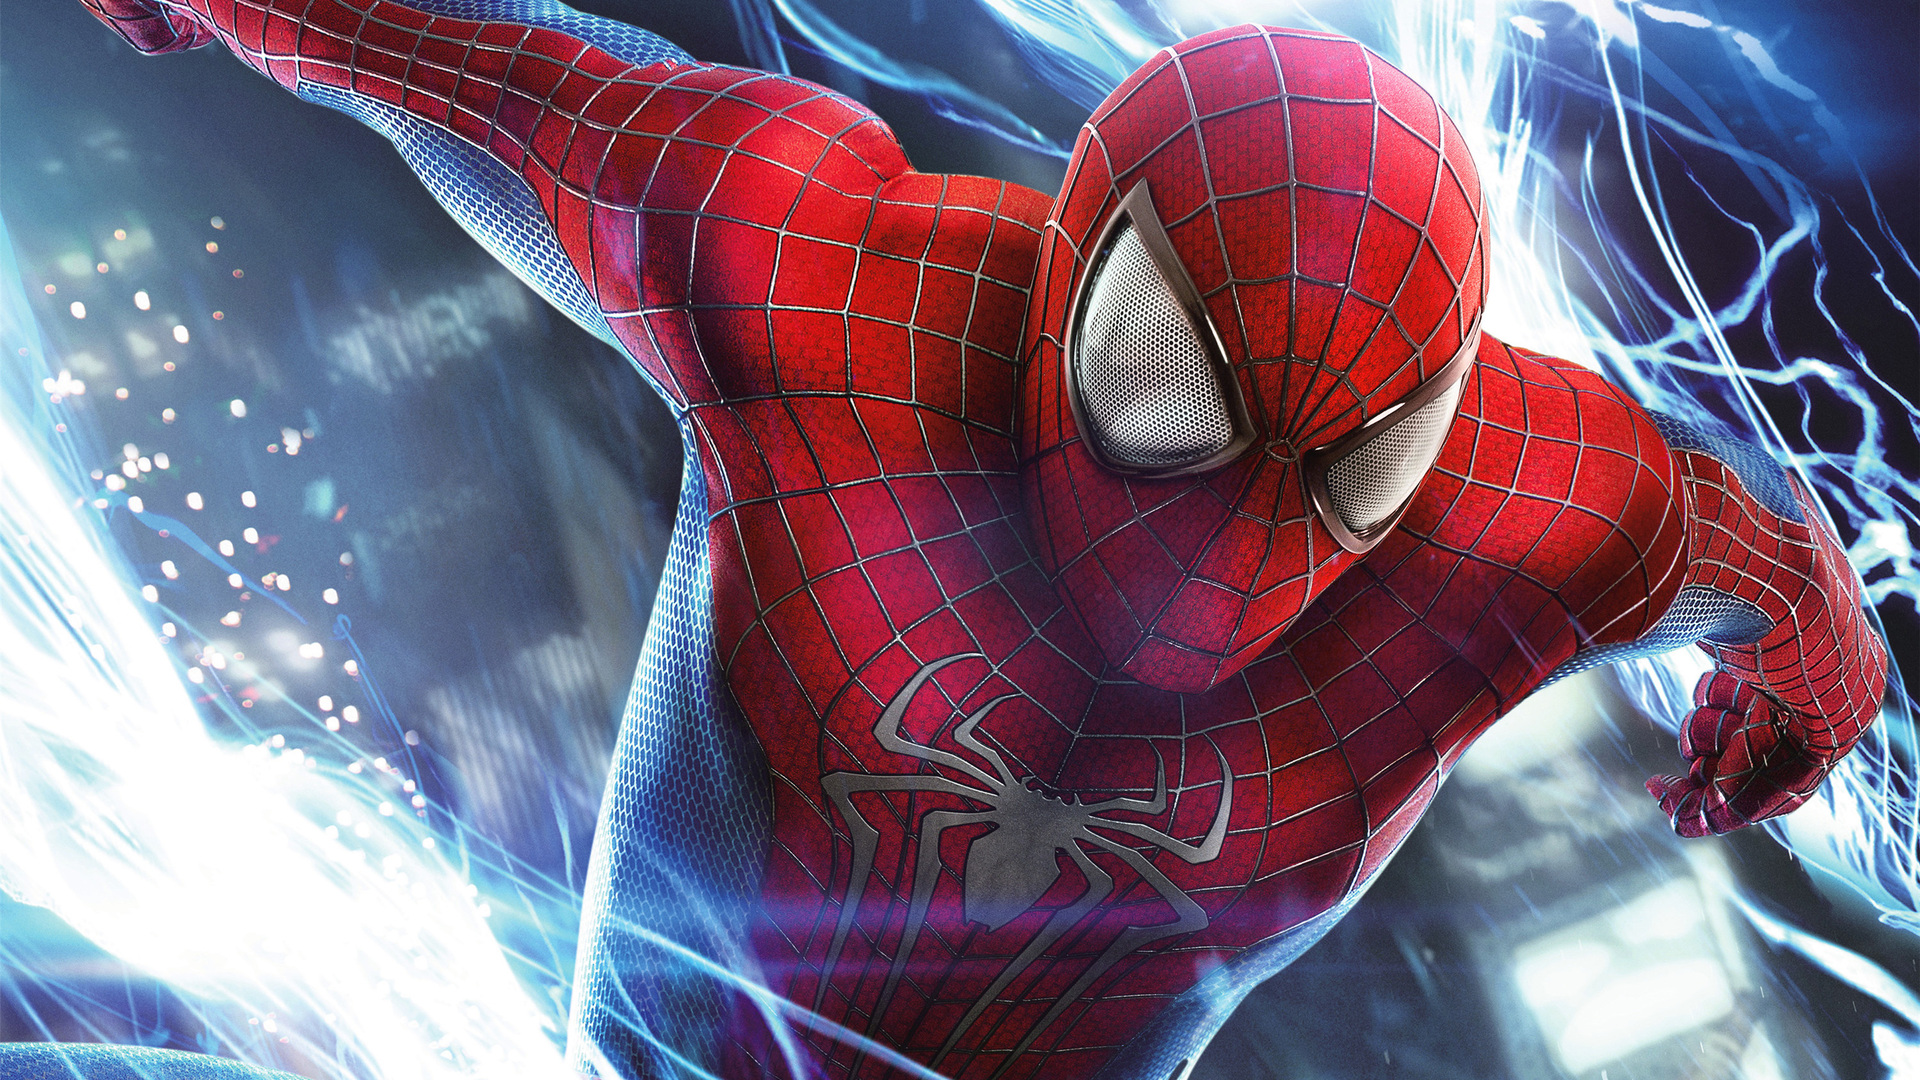 Spiderman 3 Hd Wallpapers 1080p: 1920x1080 Amazing Spiderman 4k Laptop Full HD 1080P HD 4k